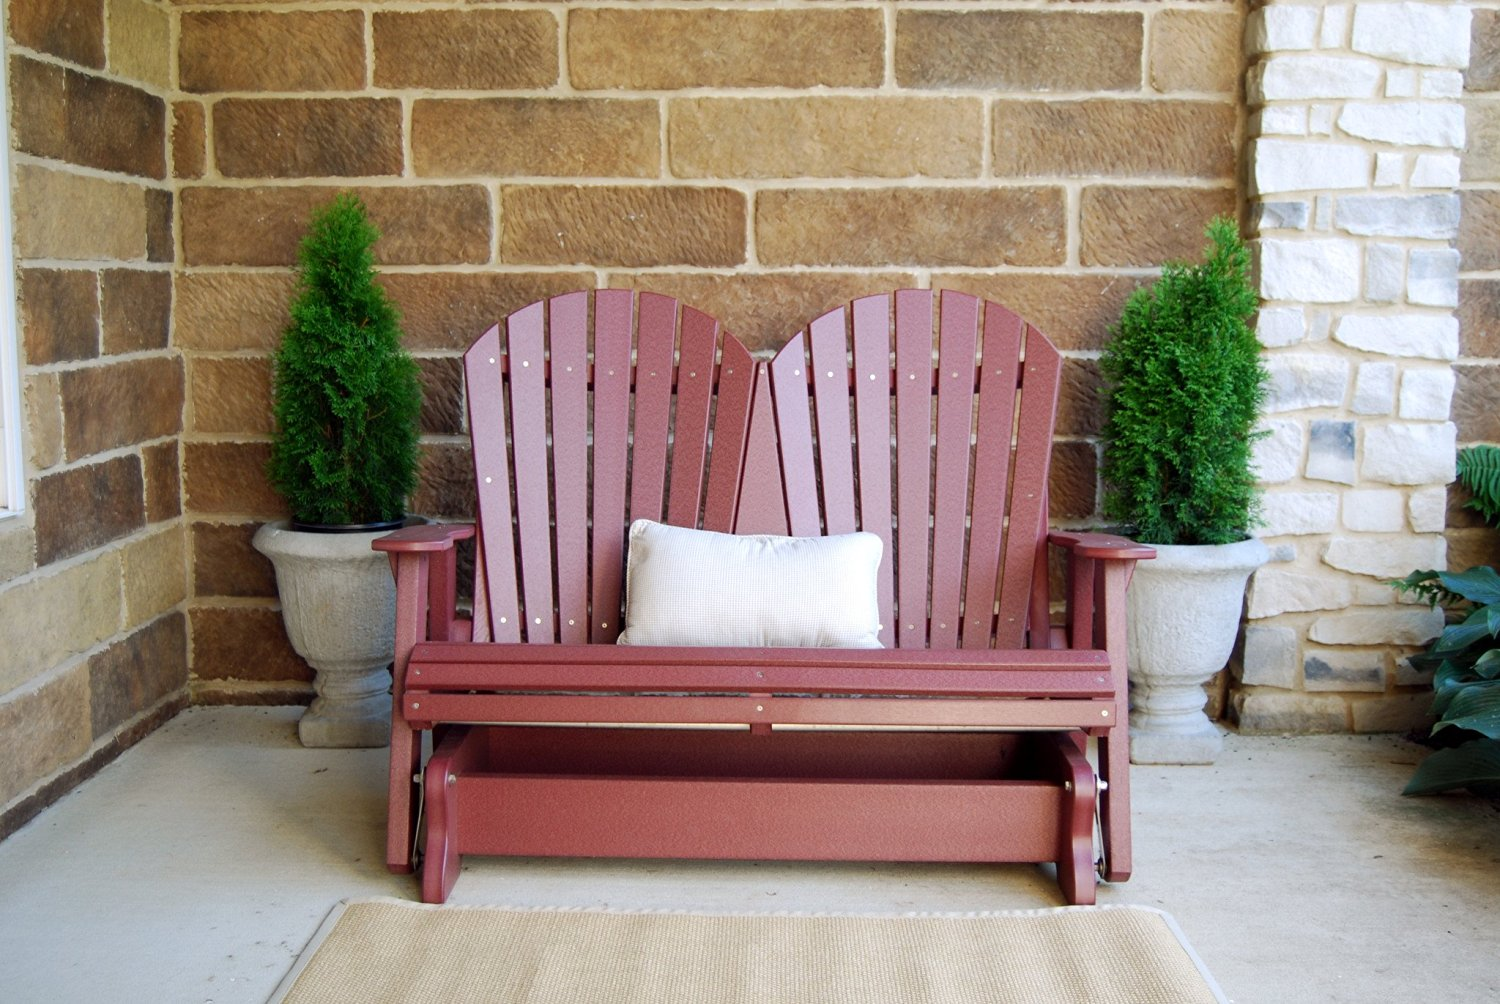 Wildridge Outdoor Recycled Plastic Heritage 4.5'Adirondack Glider - Ships in 10-14 Business Days